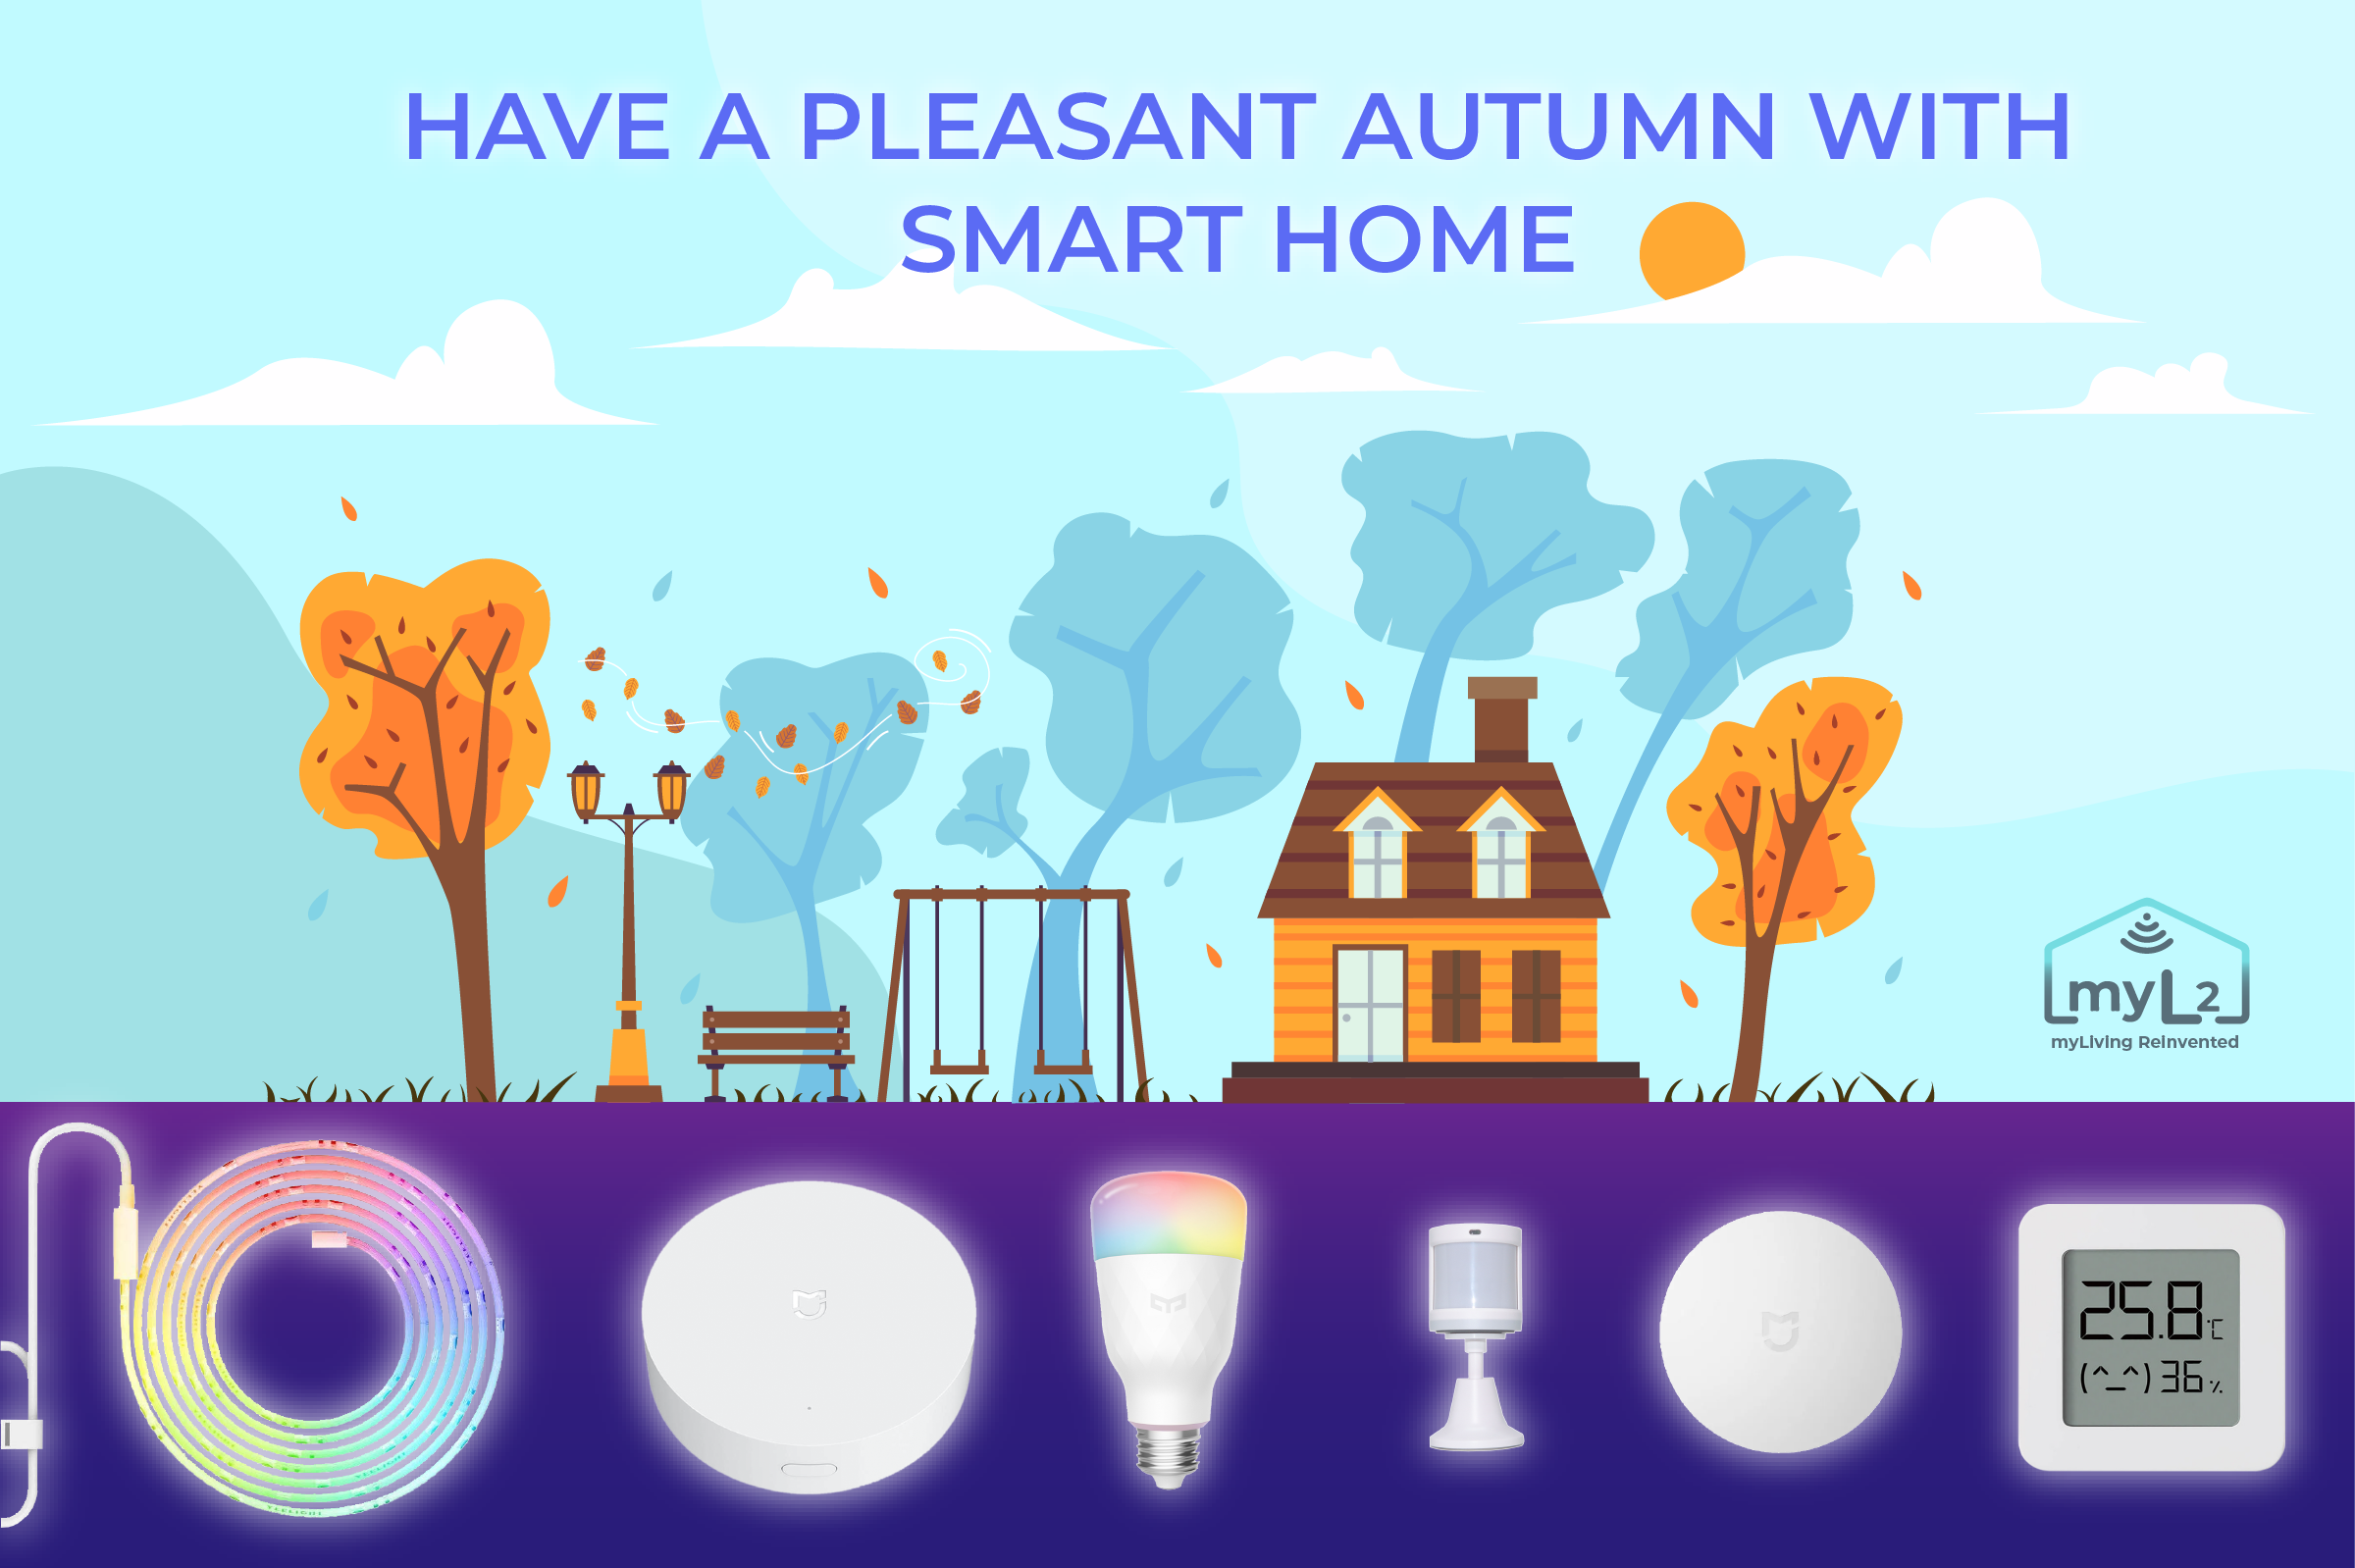 have a pleasant autumn with smart home